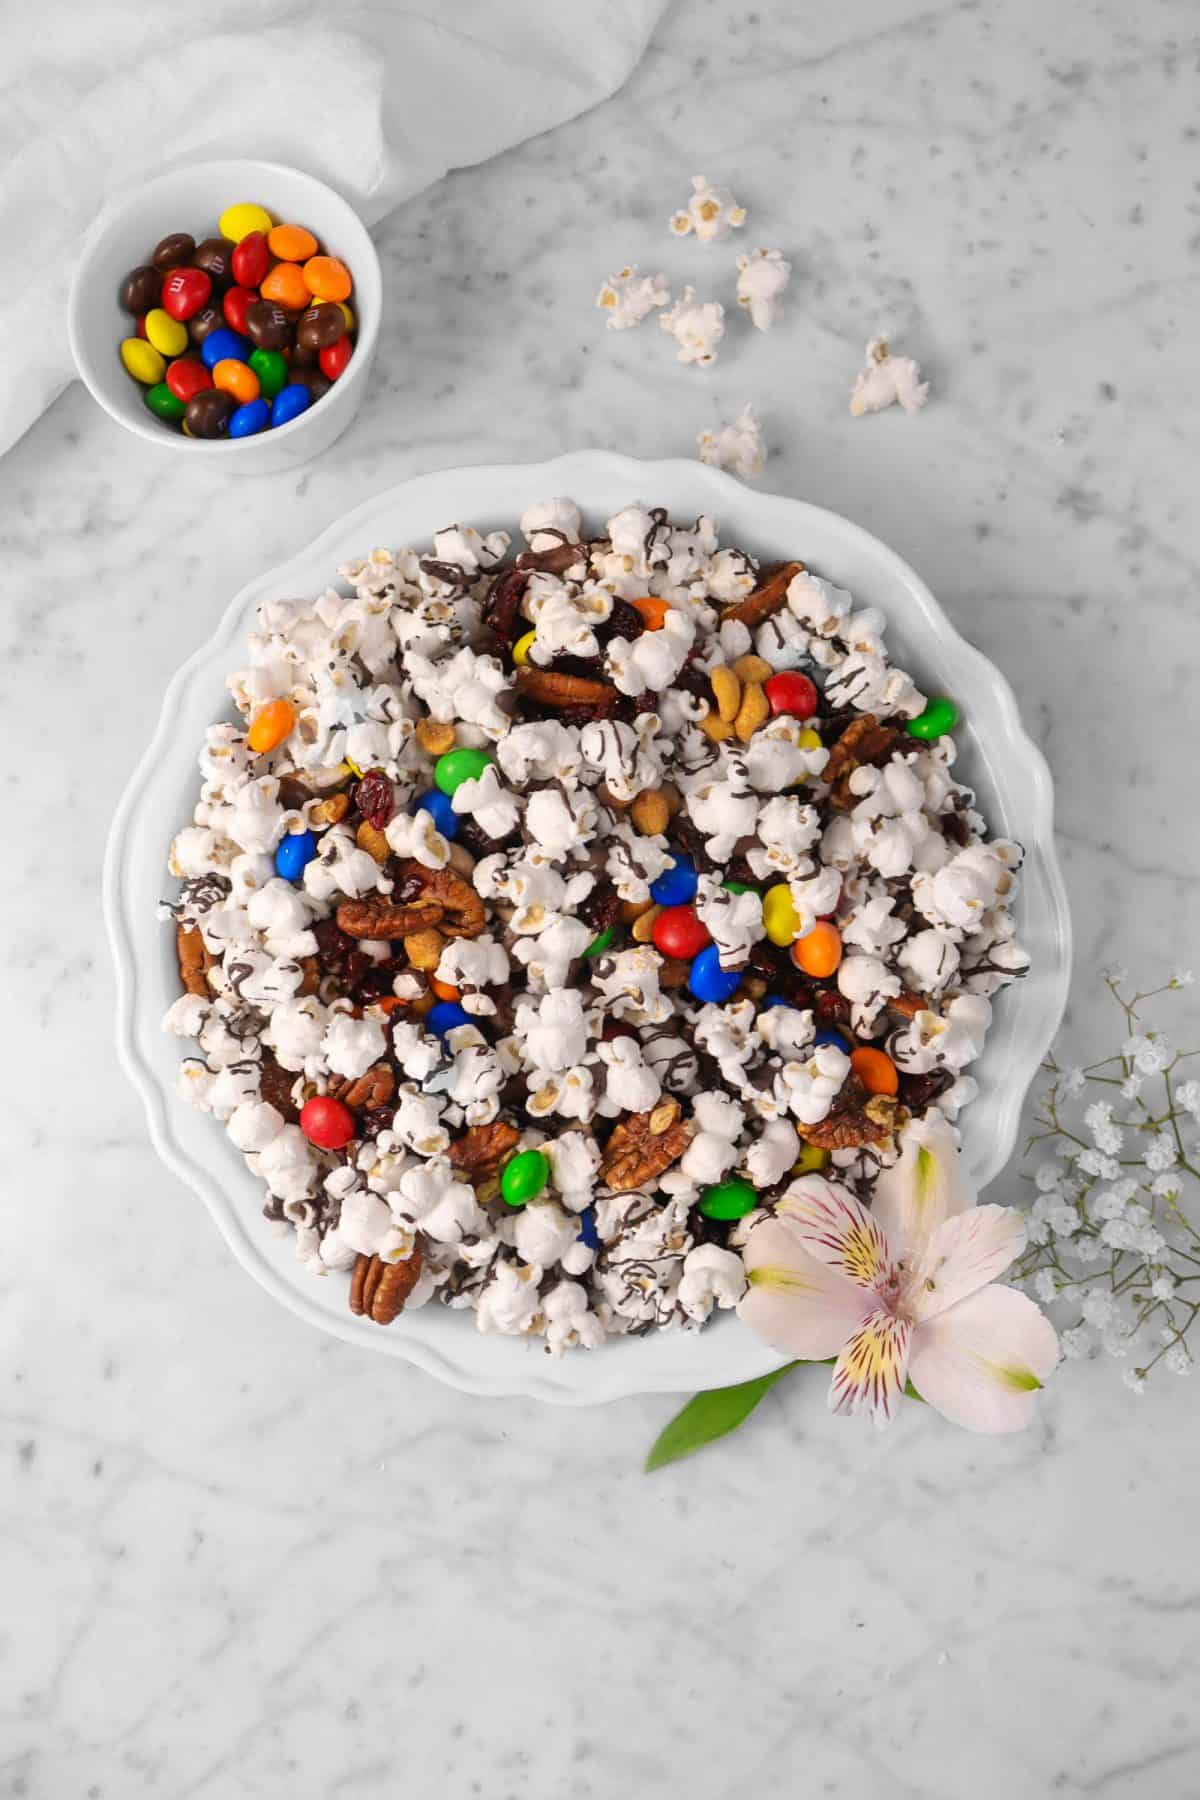 a pie plate with popcorn mix on a marble counter with fresh flowers, a bowl of M&m's, and a white napkin